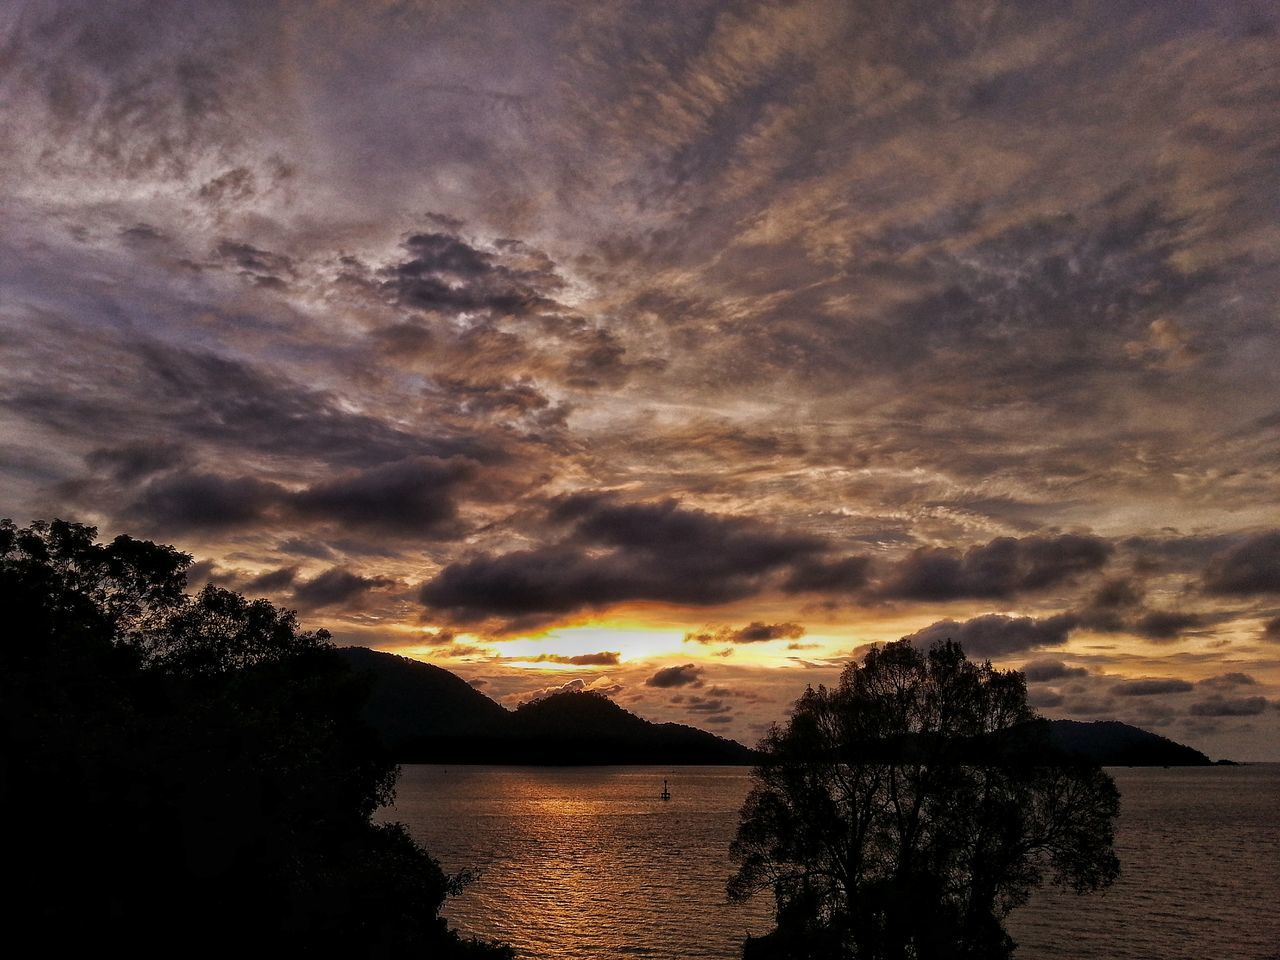 sunset, sky, scenics, tranquility, water, beauty in nature, tranquil scene, nature, cloud - sky, silhouette, no people, reflection, lake, outdoors, tree, mountain, day